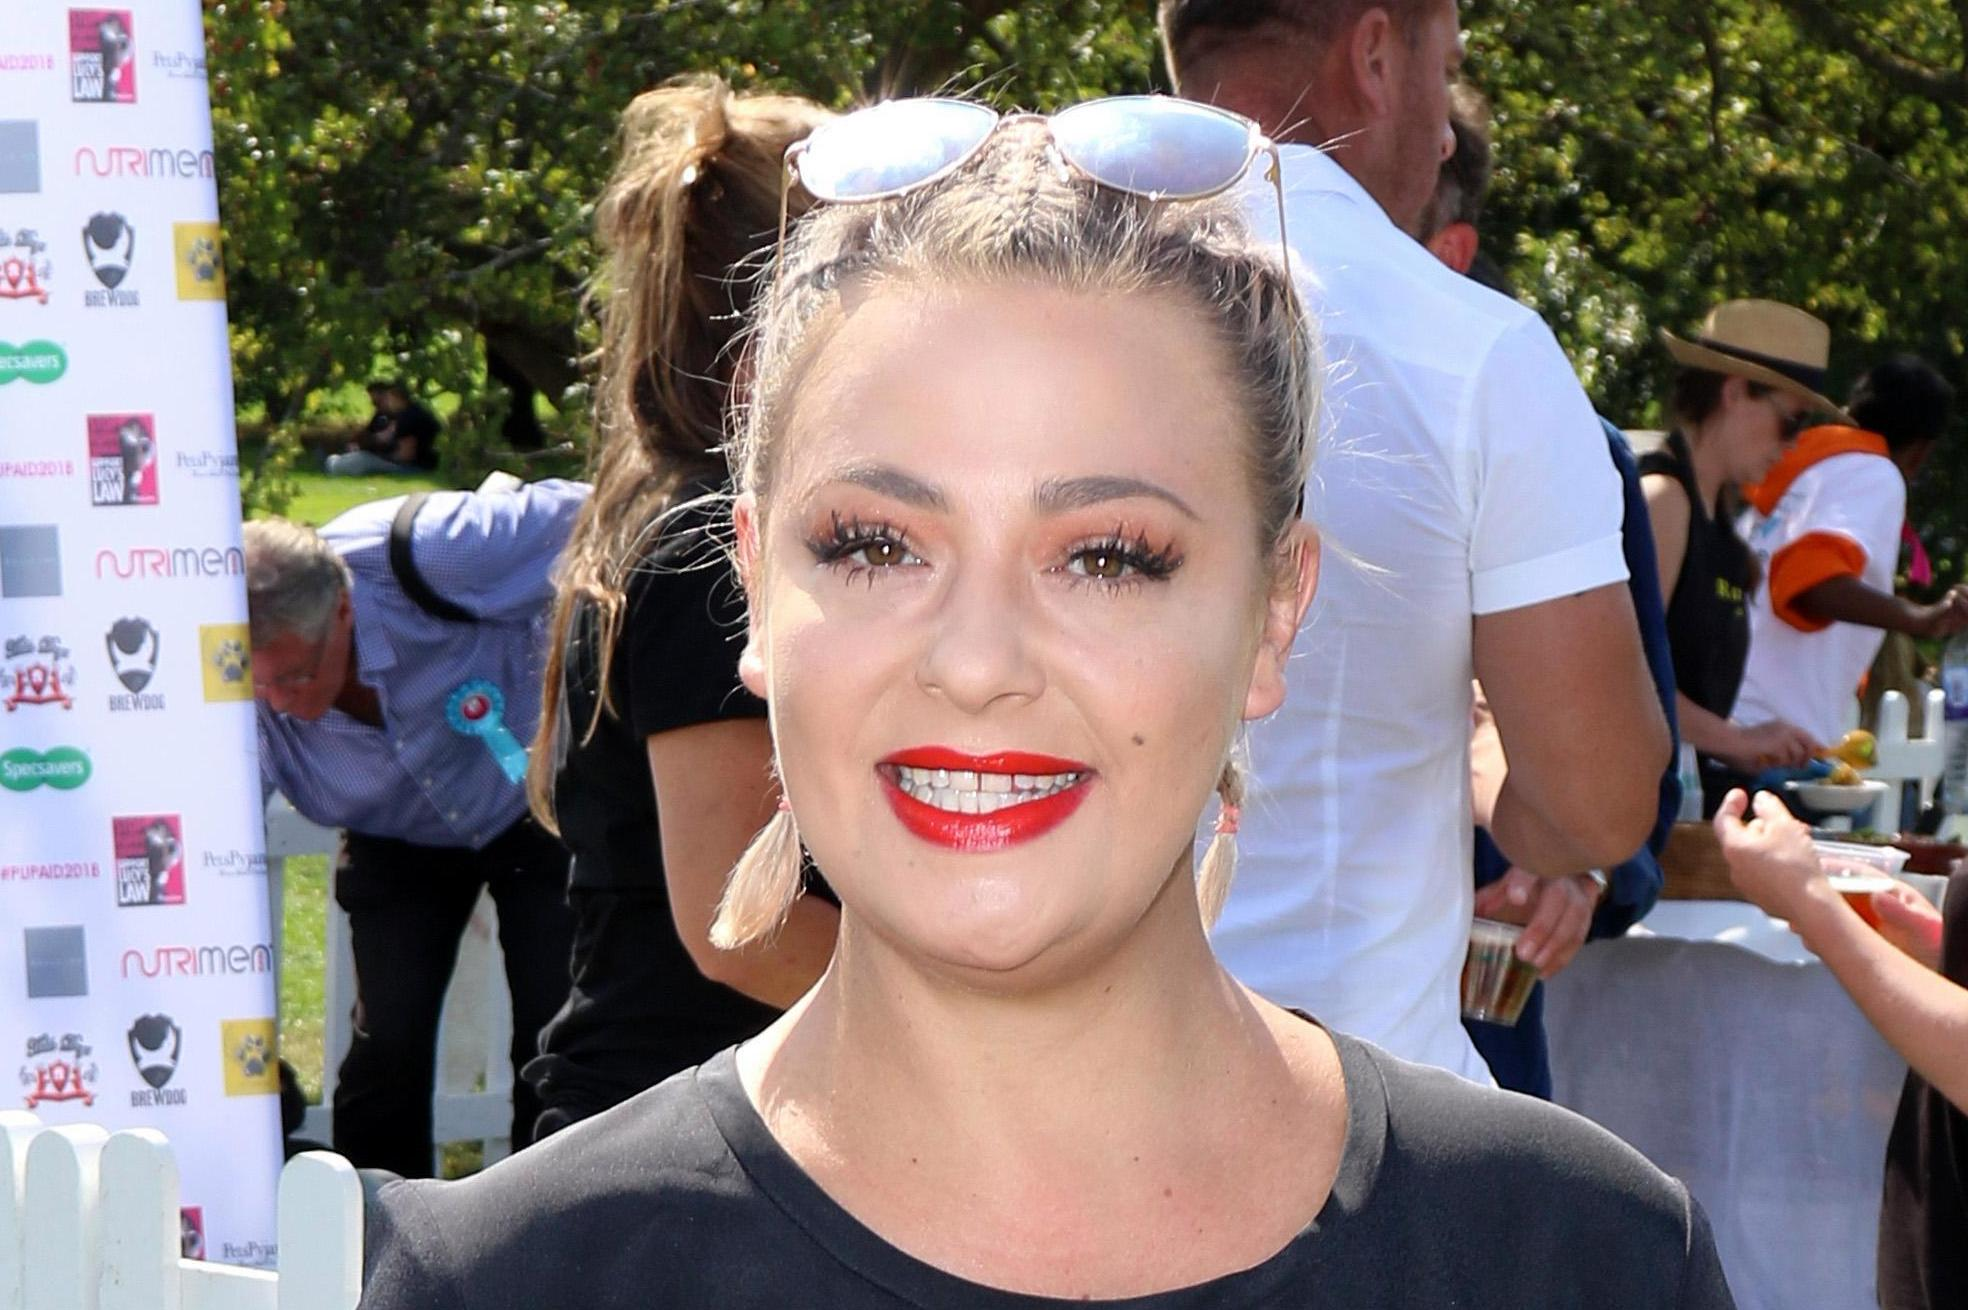 Ant McPartlin's ex Lisa Armstrong lands starring role on new makeover TV show